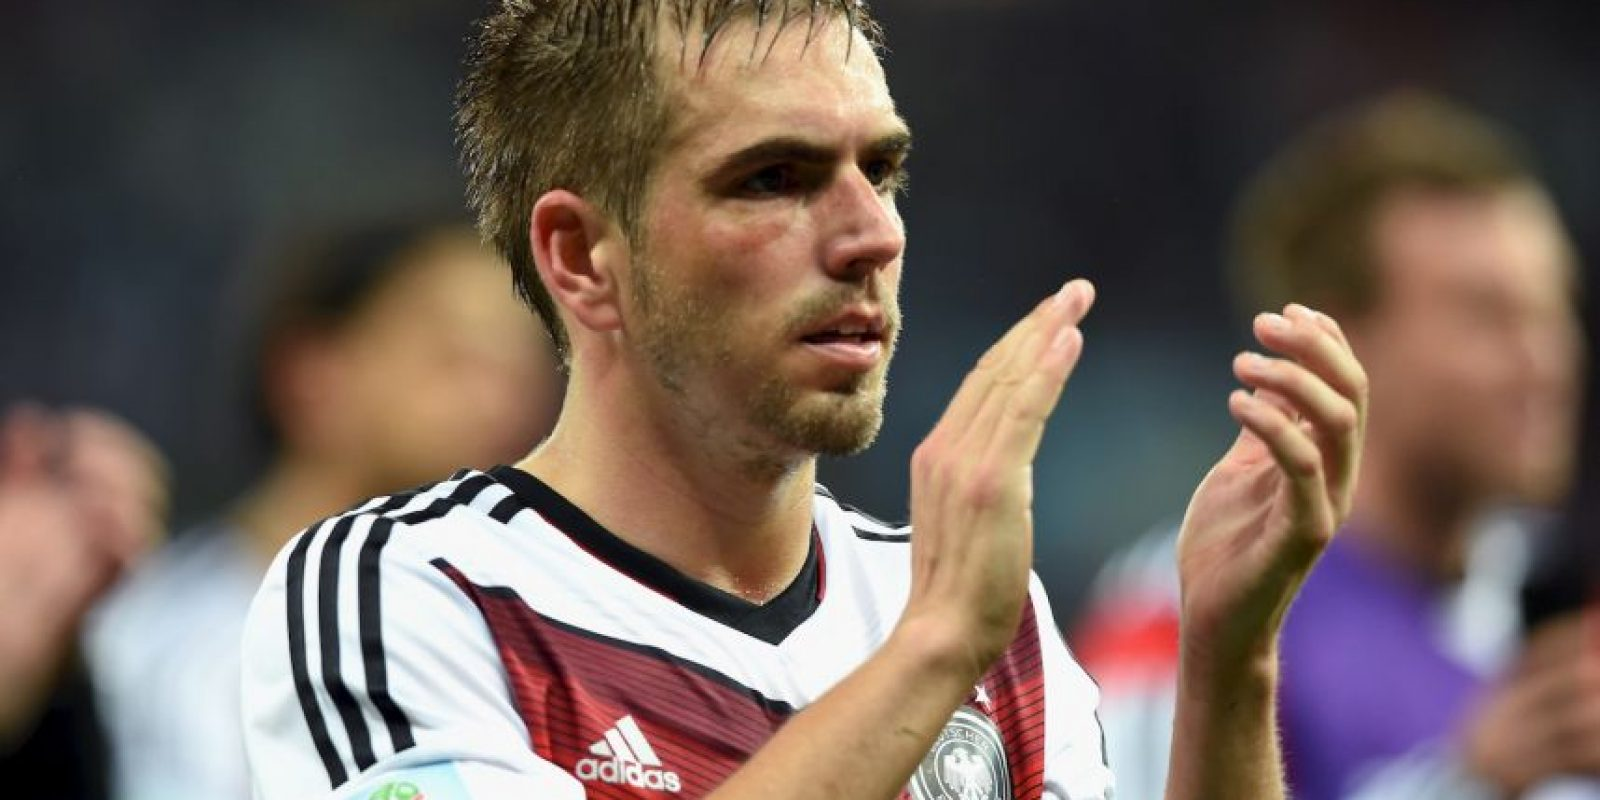 10. Philipp Lahm – Alemania Foto: Getty Images